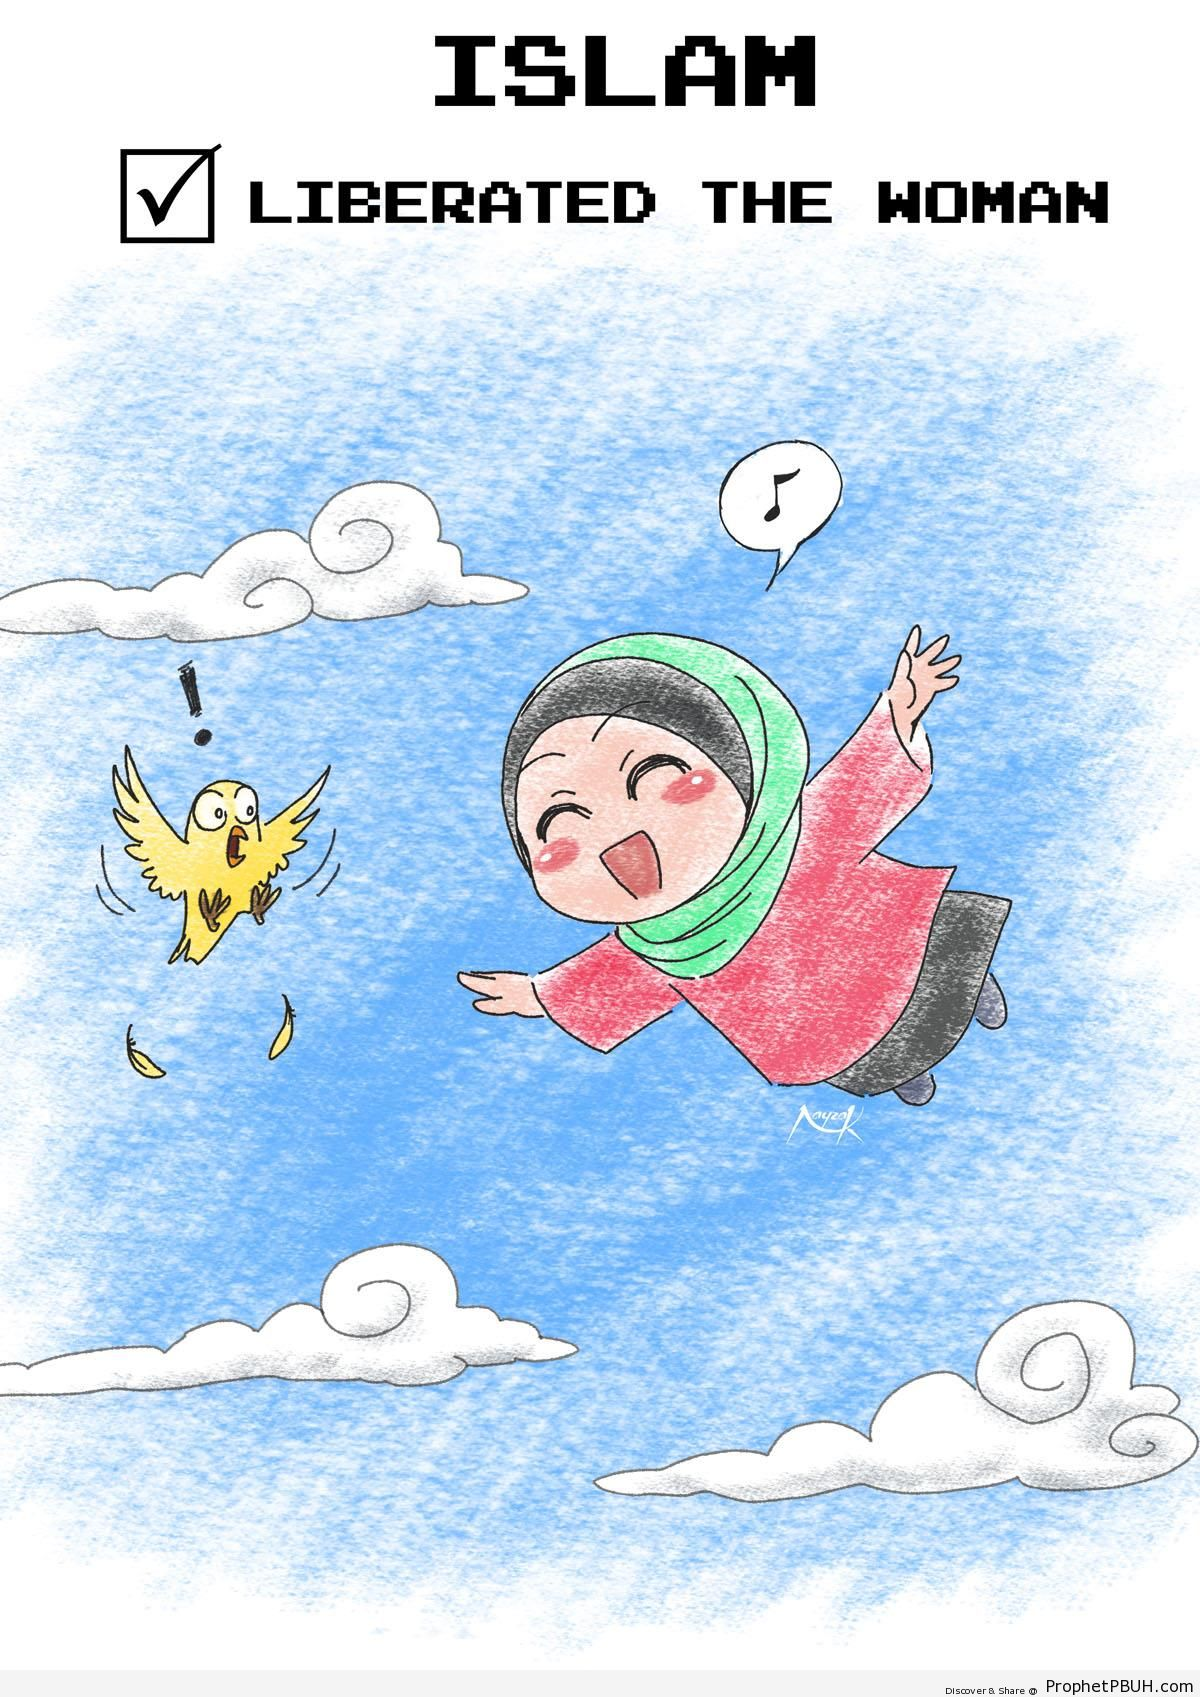 Islam Liberated the Woman (Poster With Happy Chibi Muslimah Drawing) - Chibi Drawings (Cute Muslim Characters)